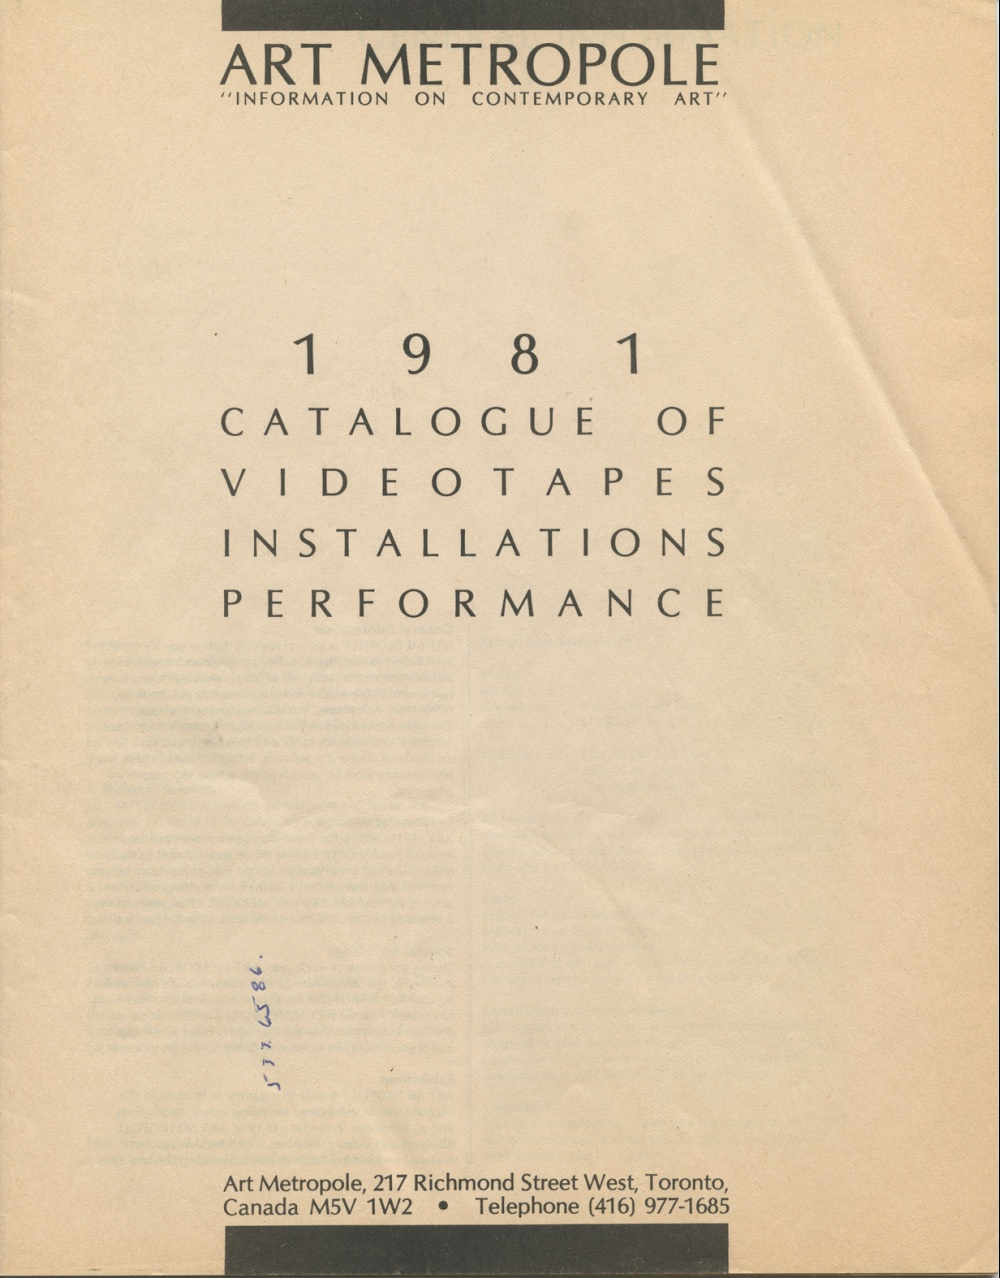 AM. 1981. Catalogue of Videotapes Installations Performances.